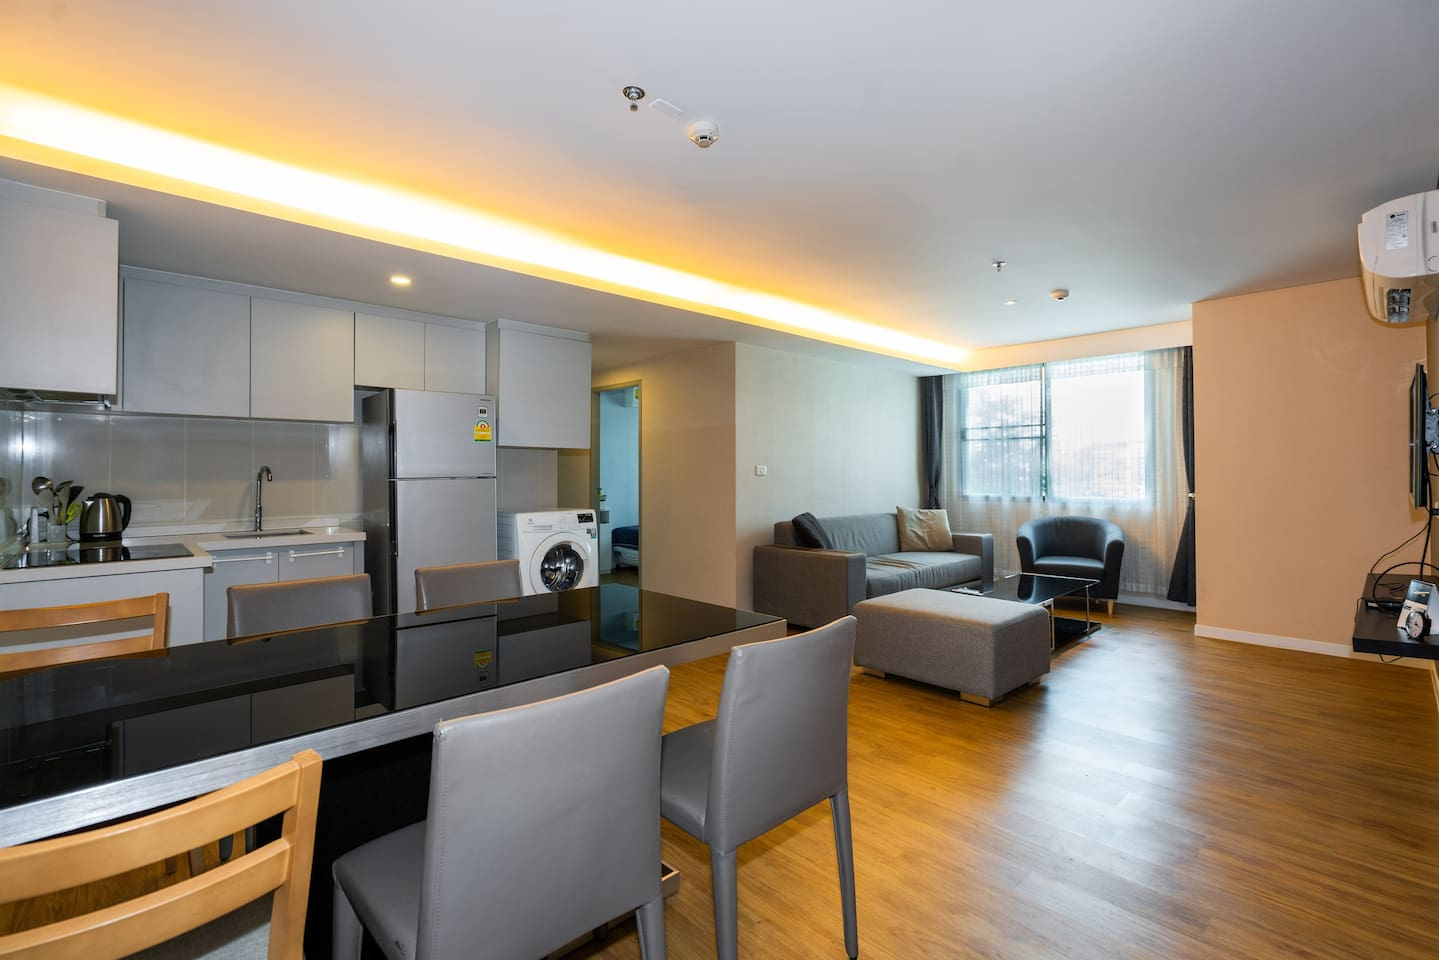 Spacious living room and full kitchen for cooking.